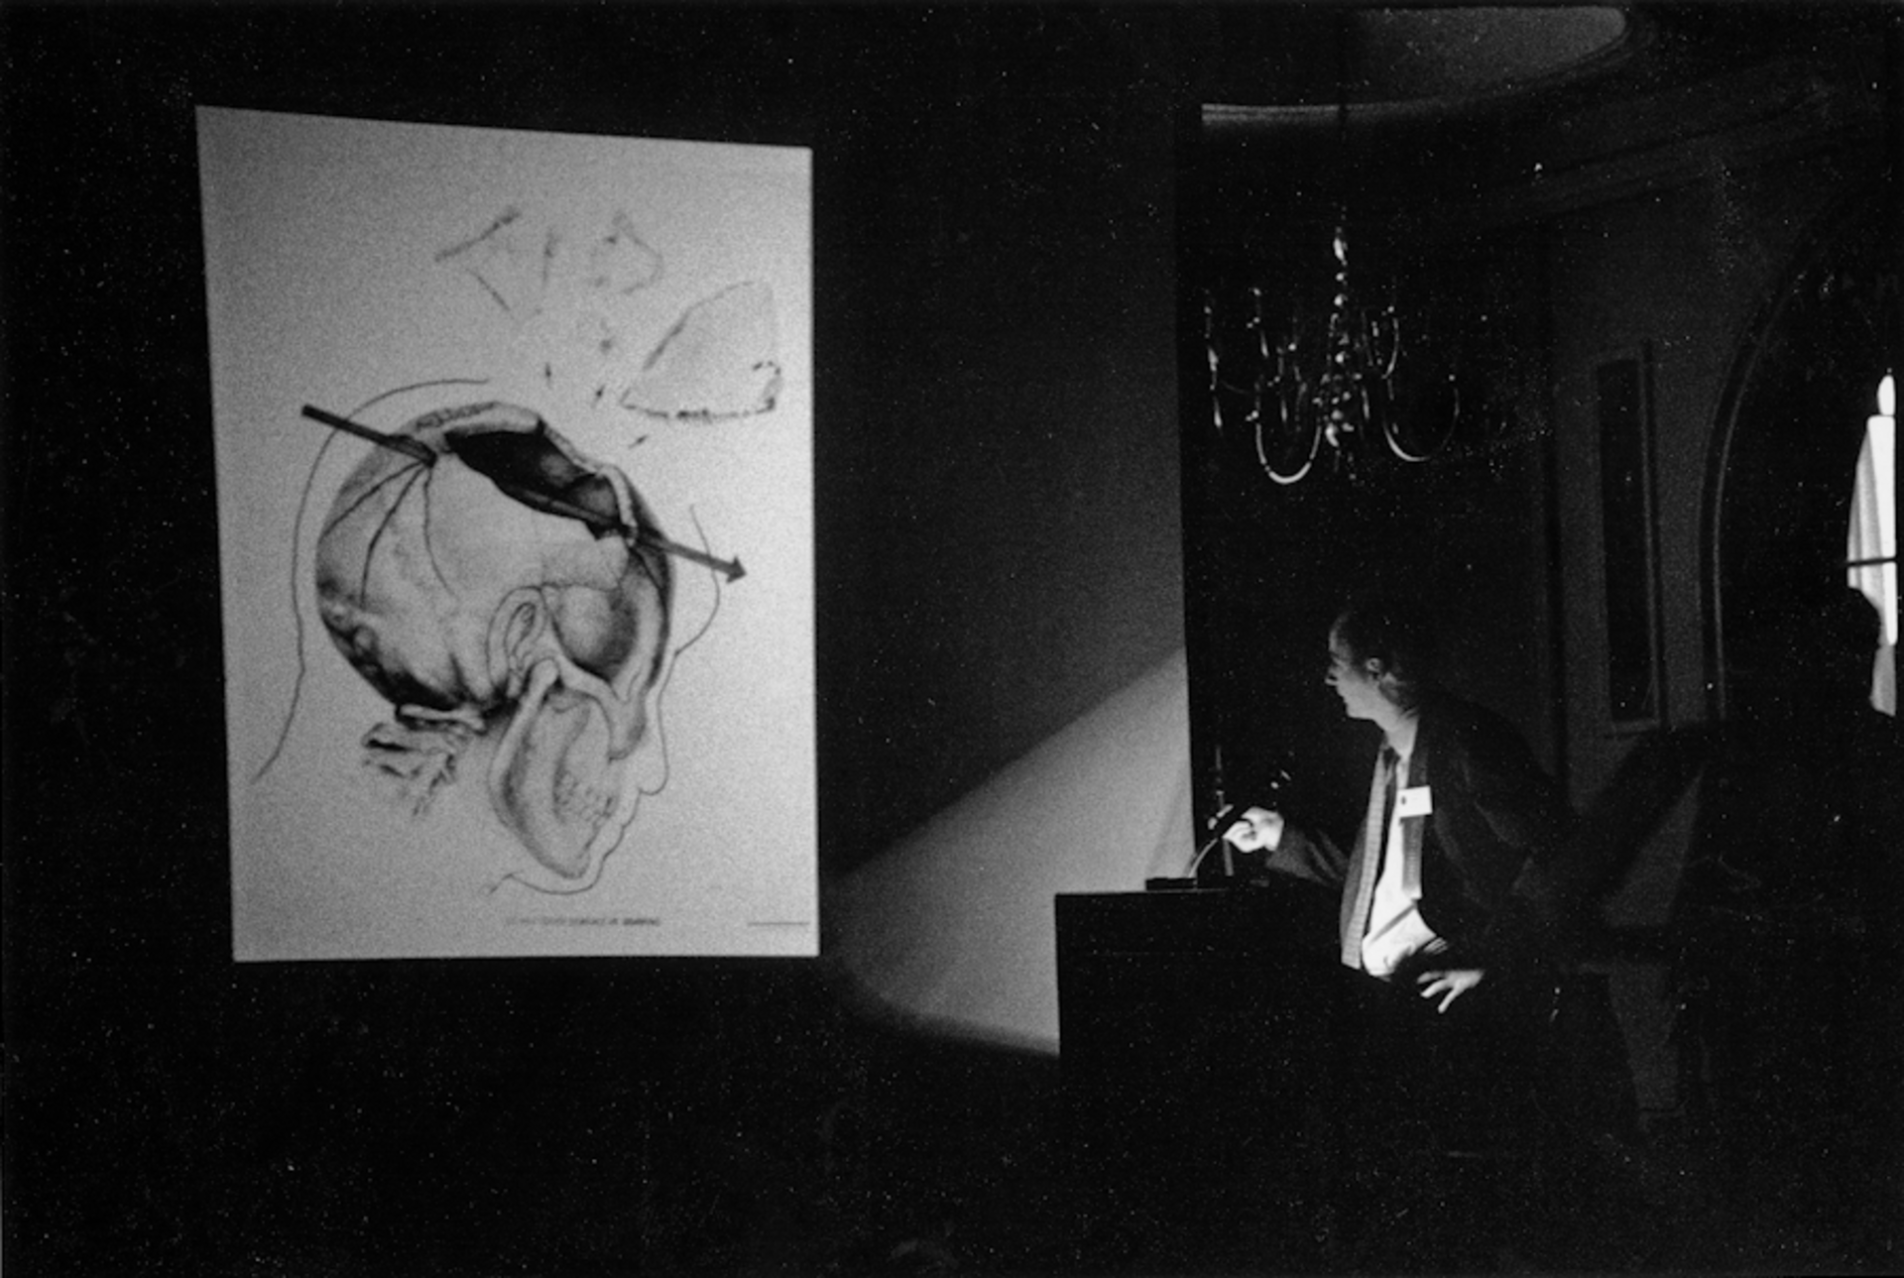 Lecture, 1993